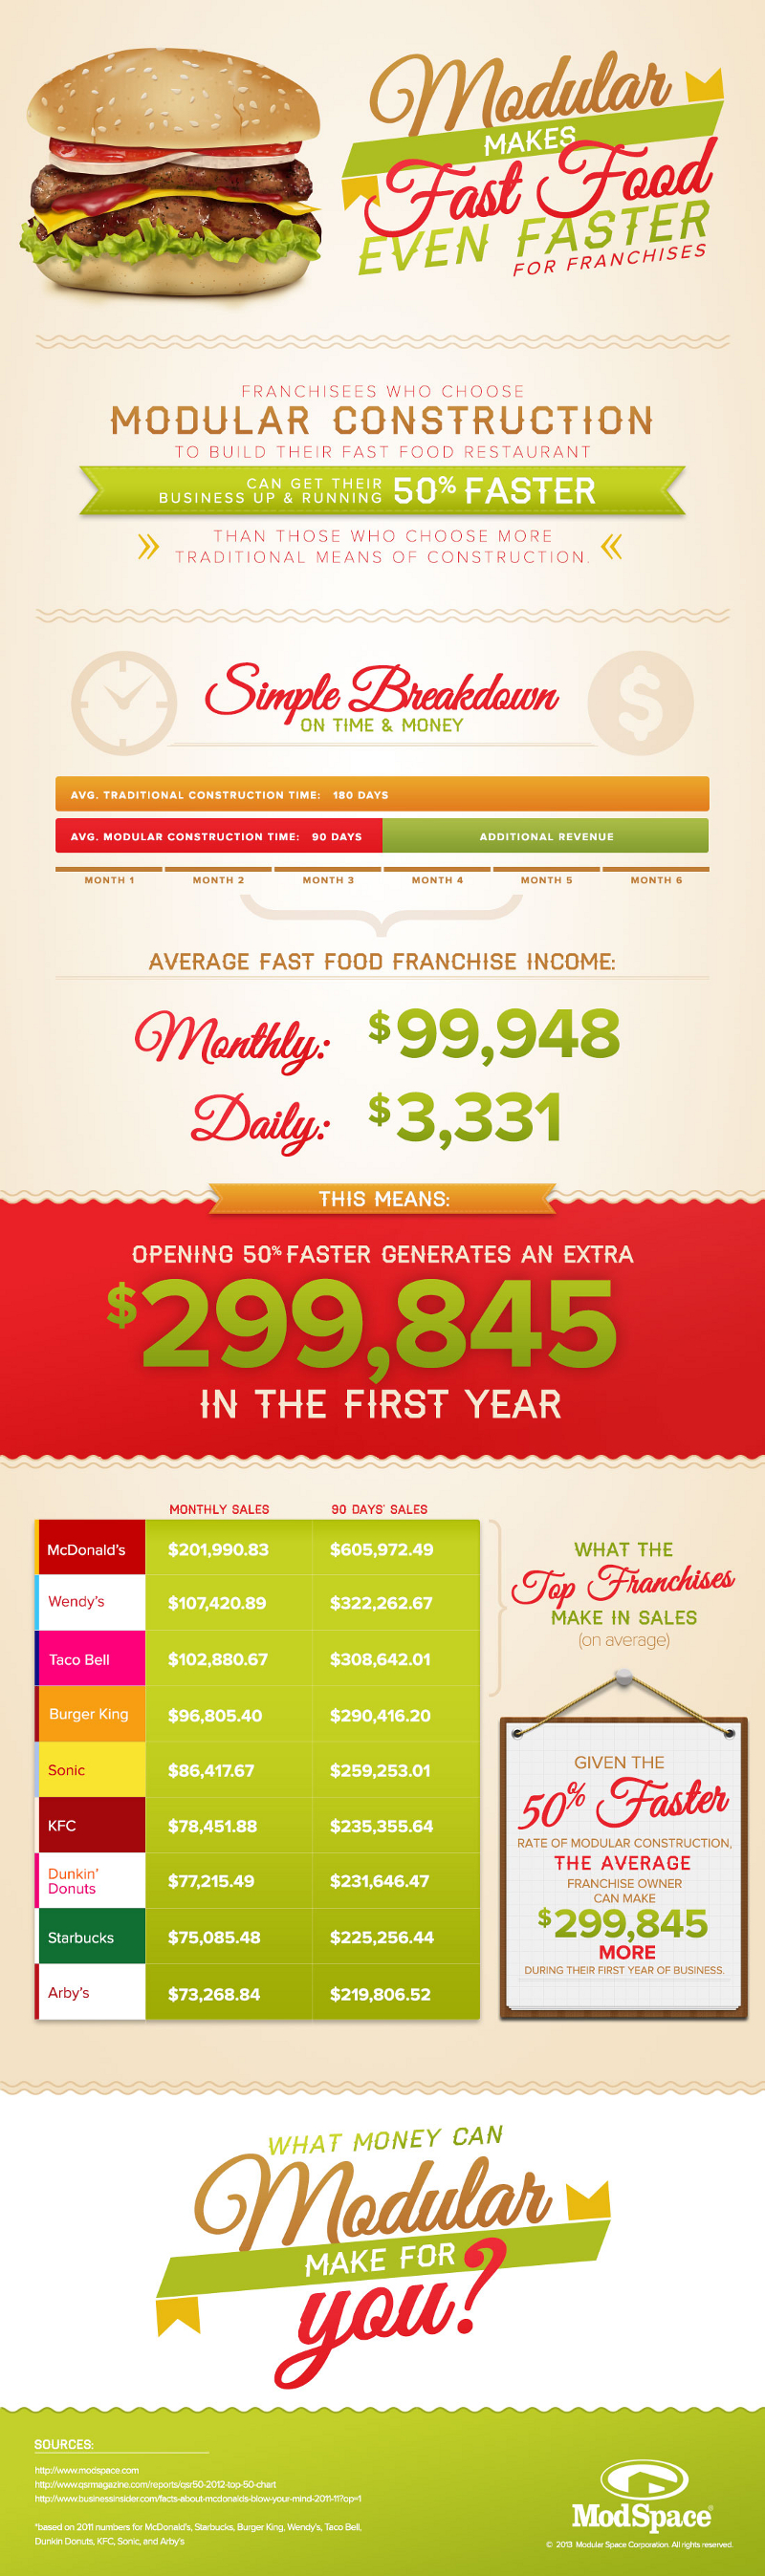 Fast Food Industry Growth